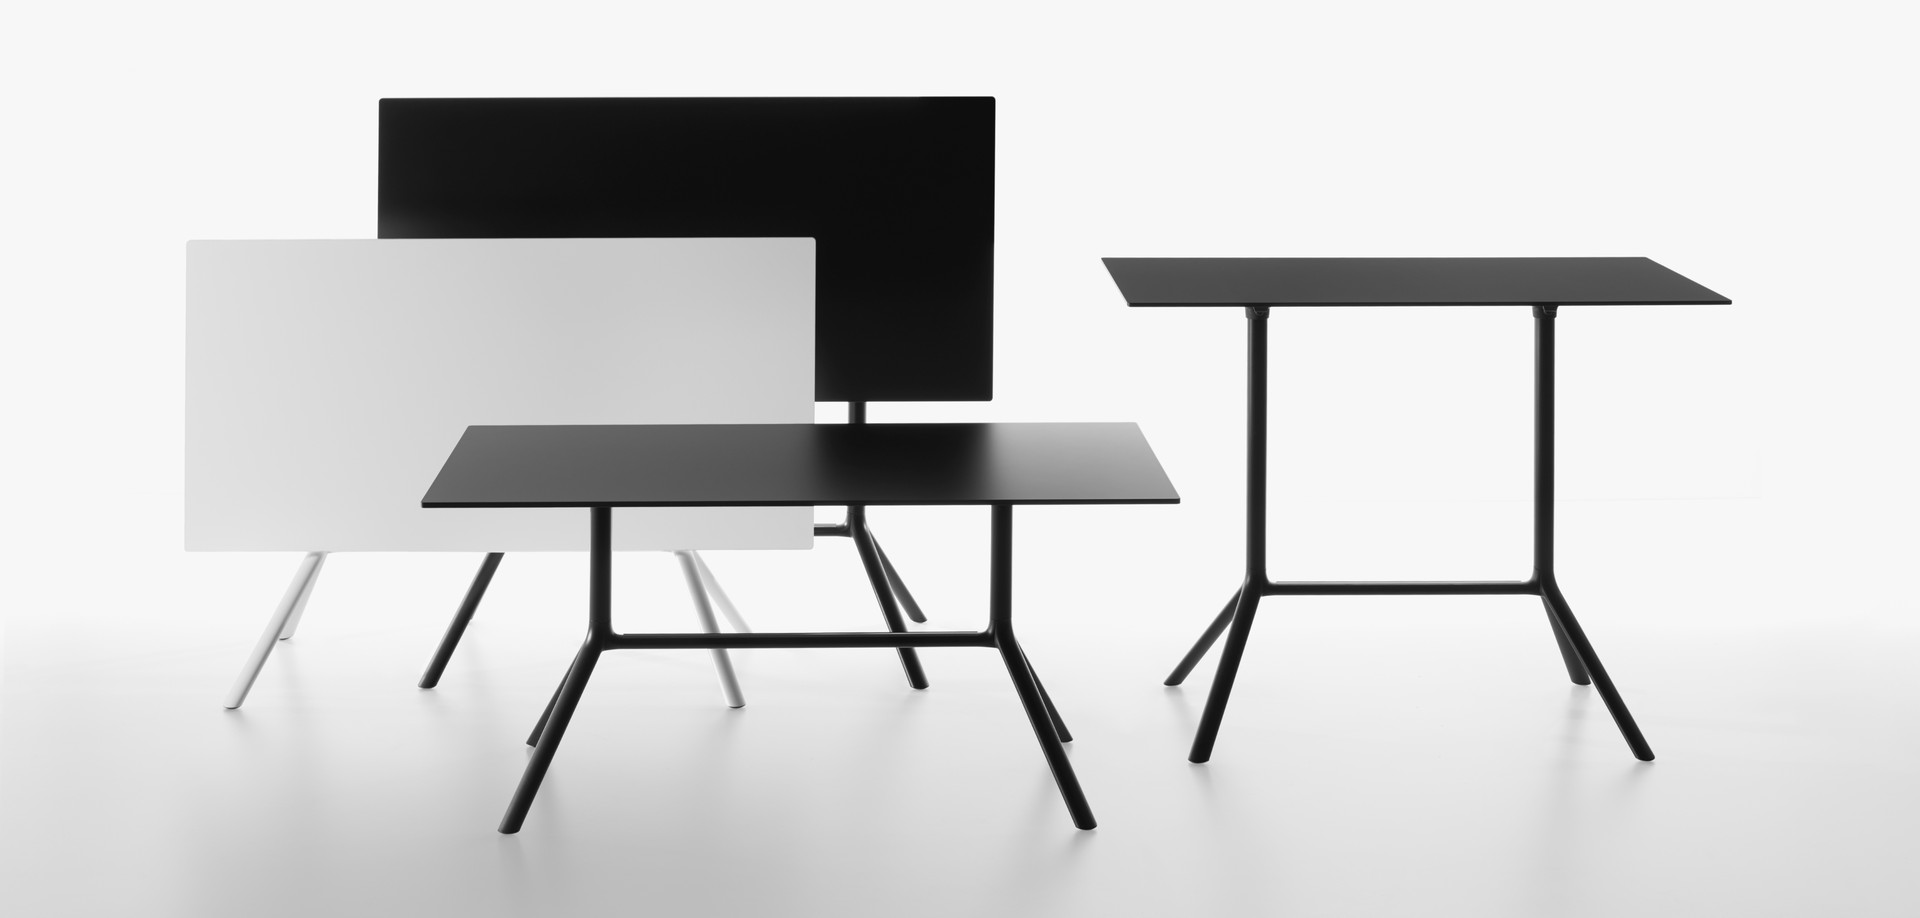 Plank - MIURA table rectangular folded and unfolded, black, white - group